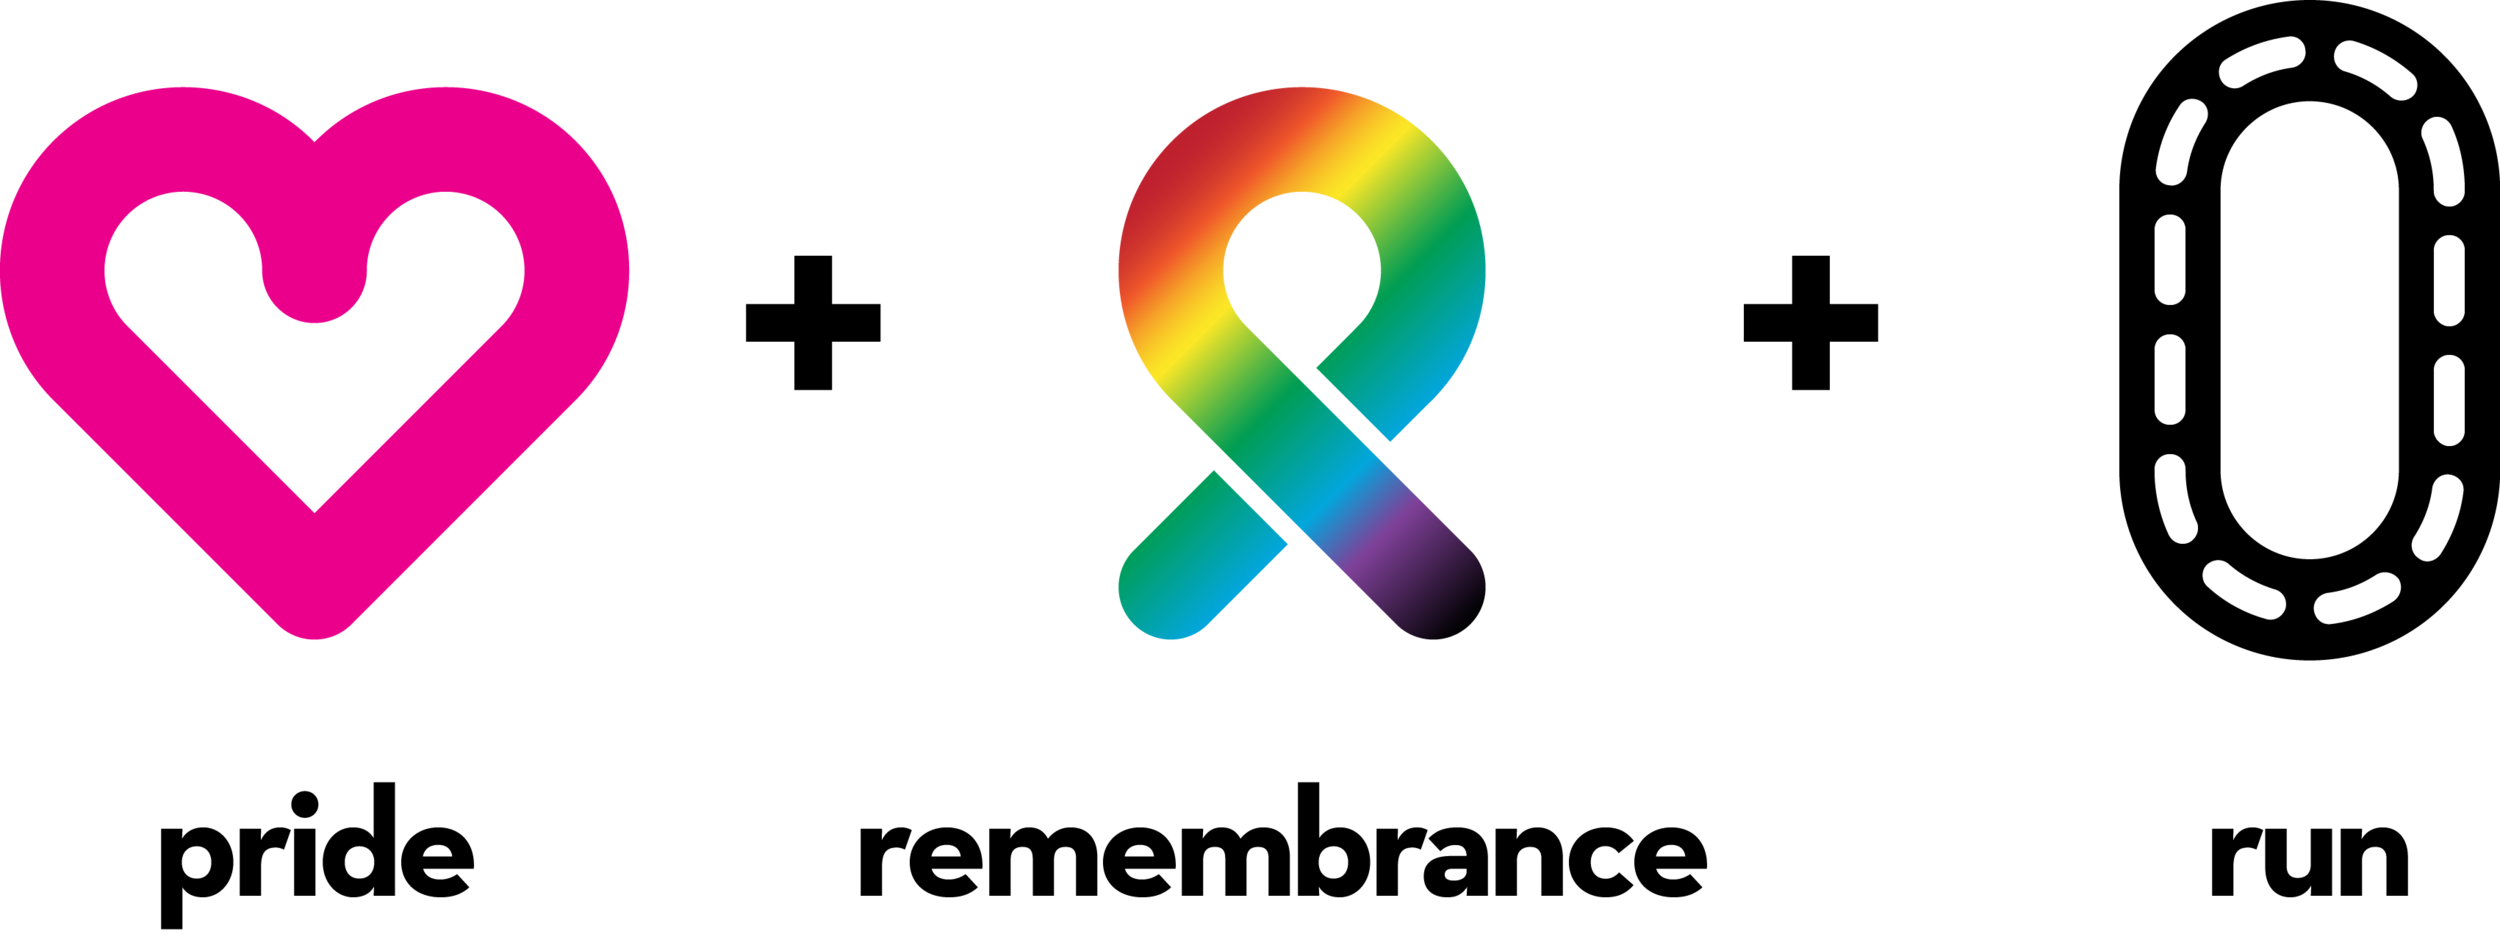 priderunto_logo_elements_RGB_01.png